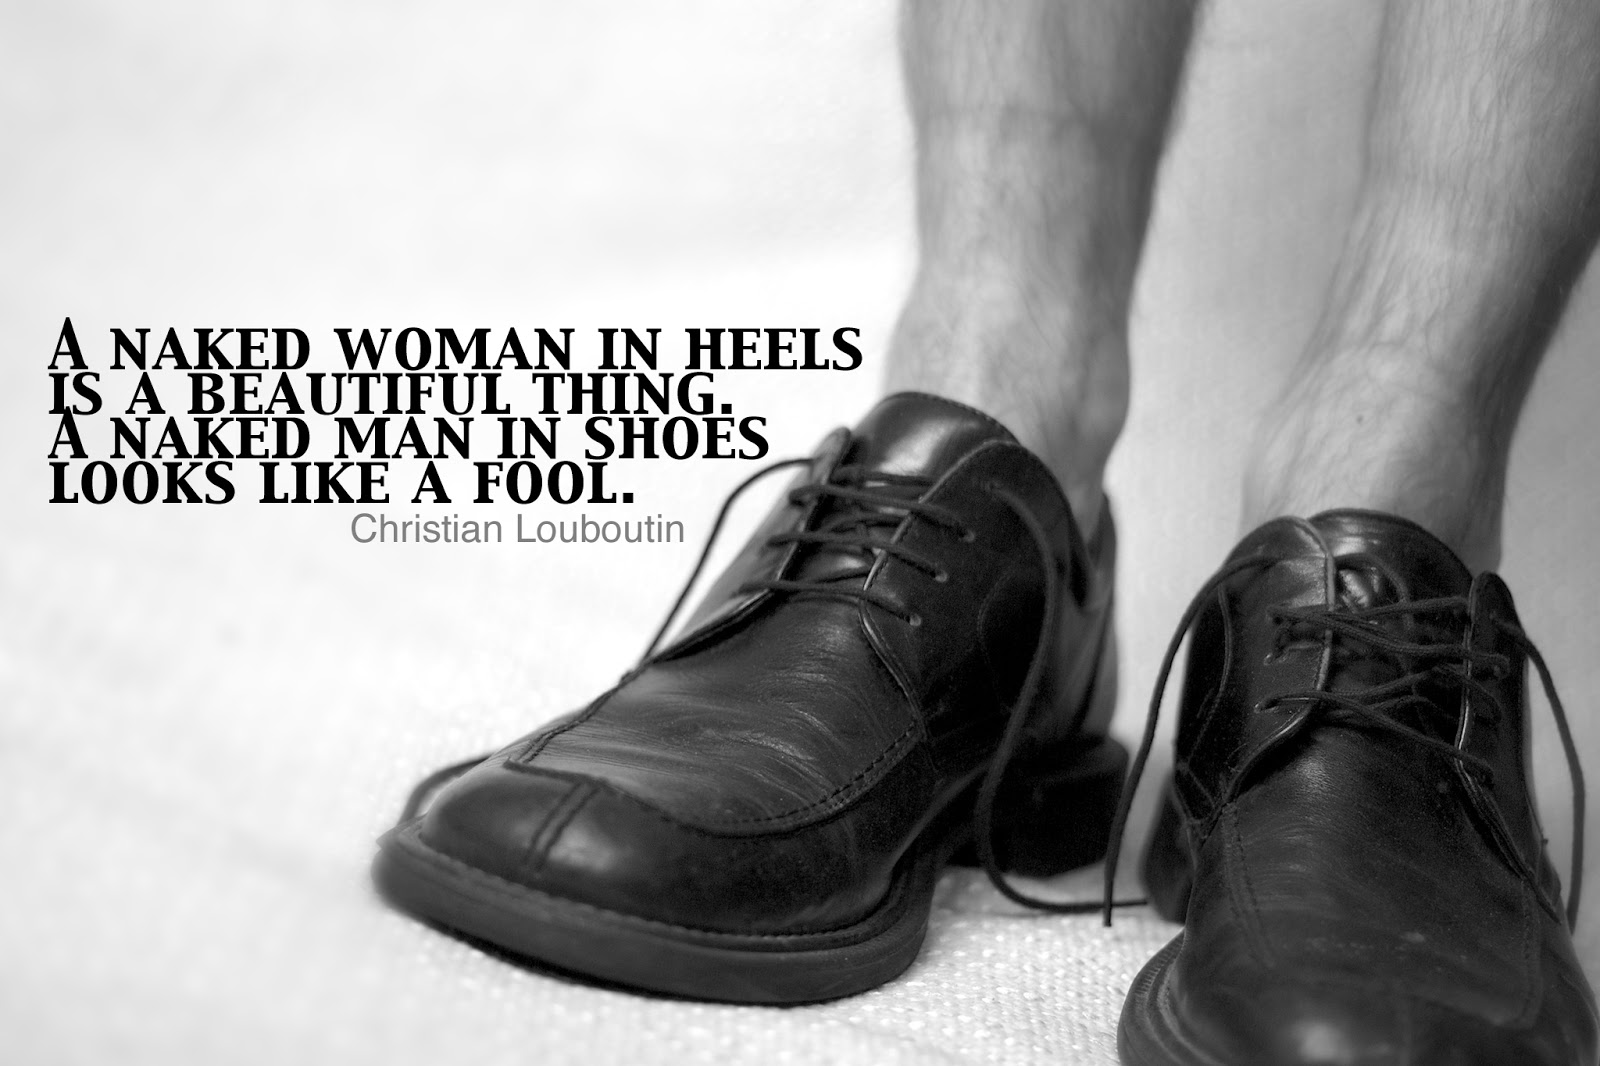 http://2.bp.blogspot.com/-fnjMz1DG9zA/UTkTwSnW_8I/AAAAAAAAD98/TVu7h4i42rA/s1600/Naked+man+in+shoes+Quote.jpg